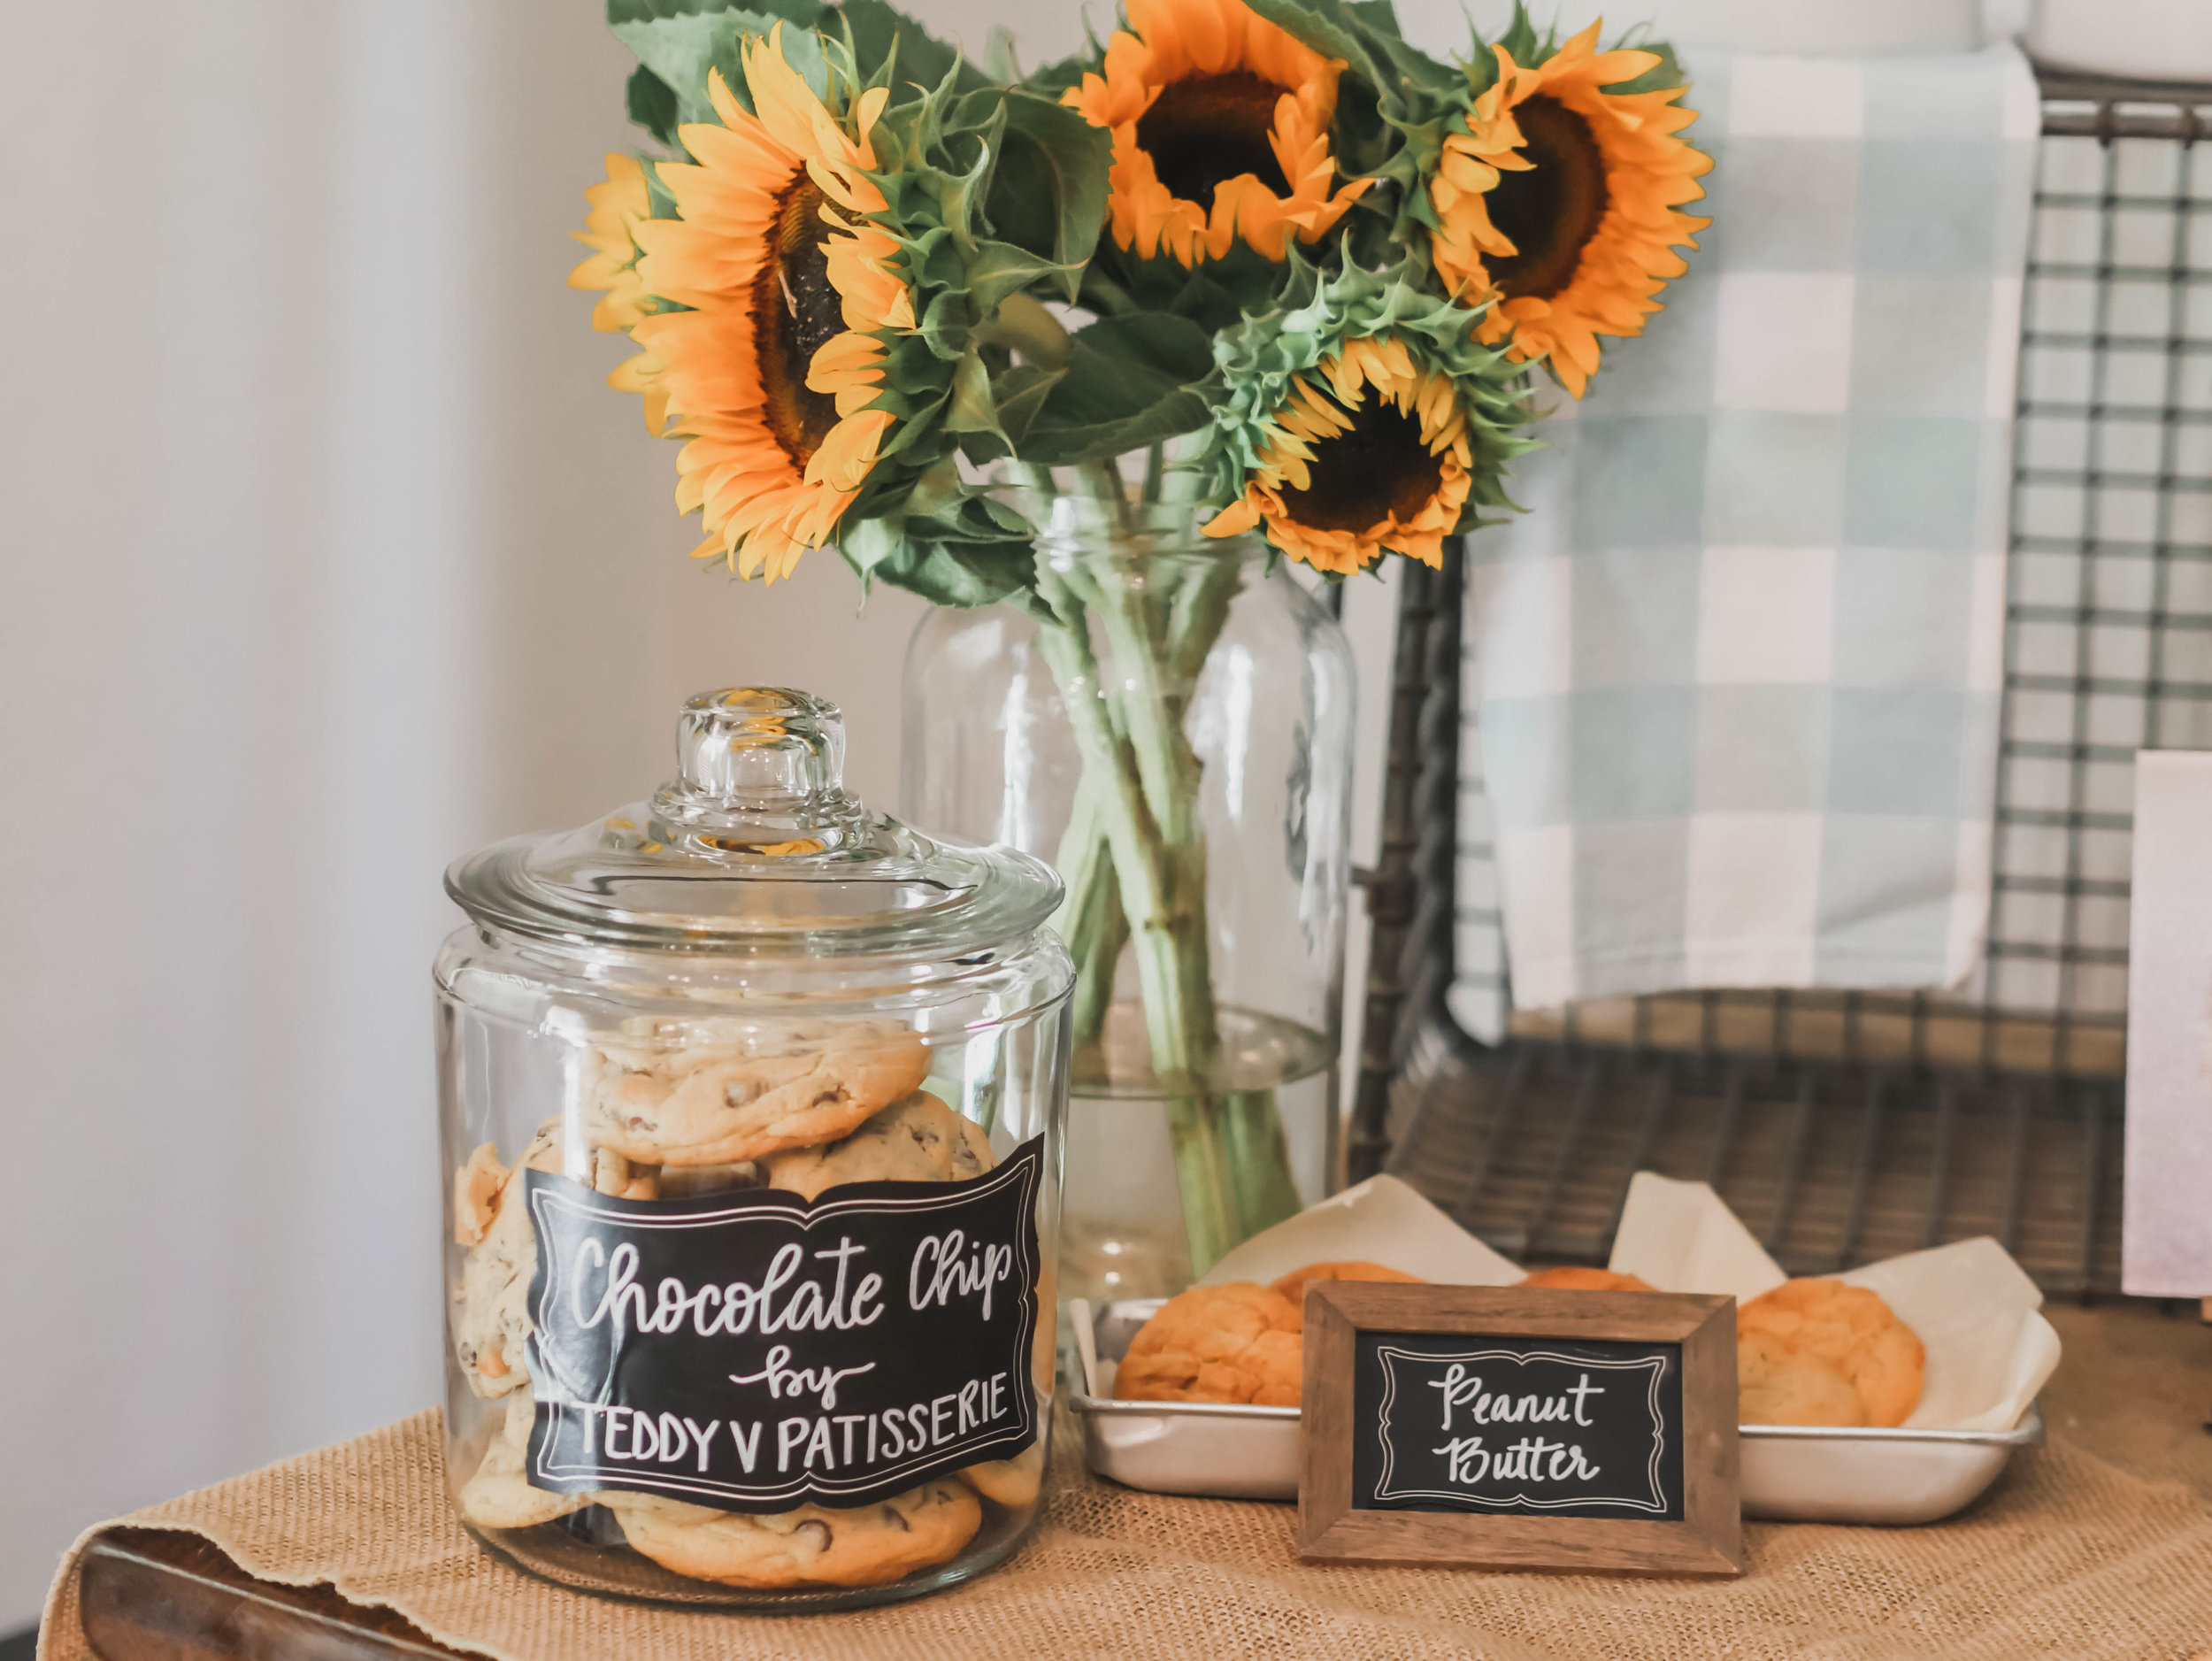 Serve cookies in apothecary jars for a One Smart Cookie Graduation Party - as seen on Mint Event Design www.minteventdesign.com